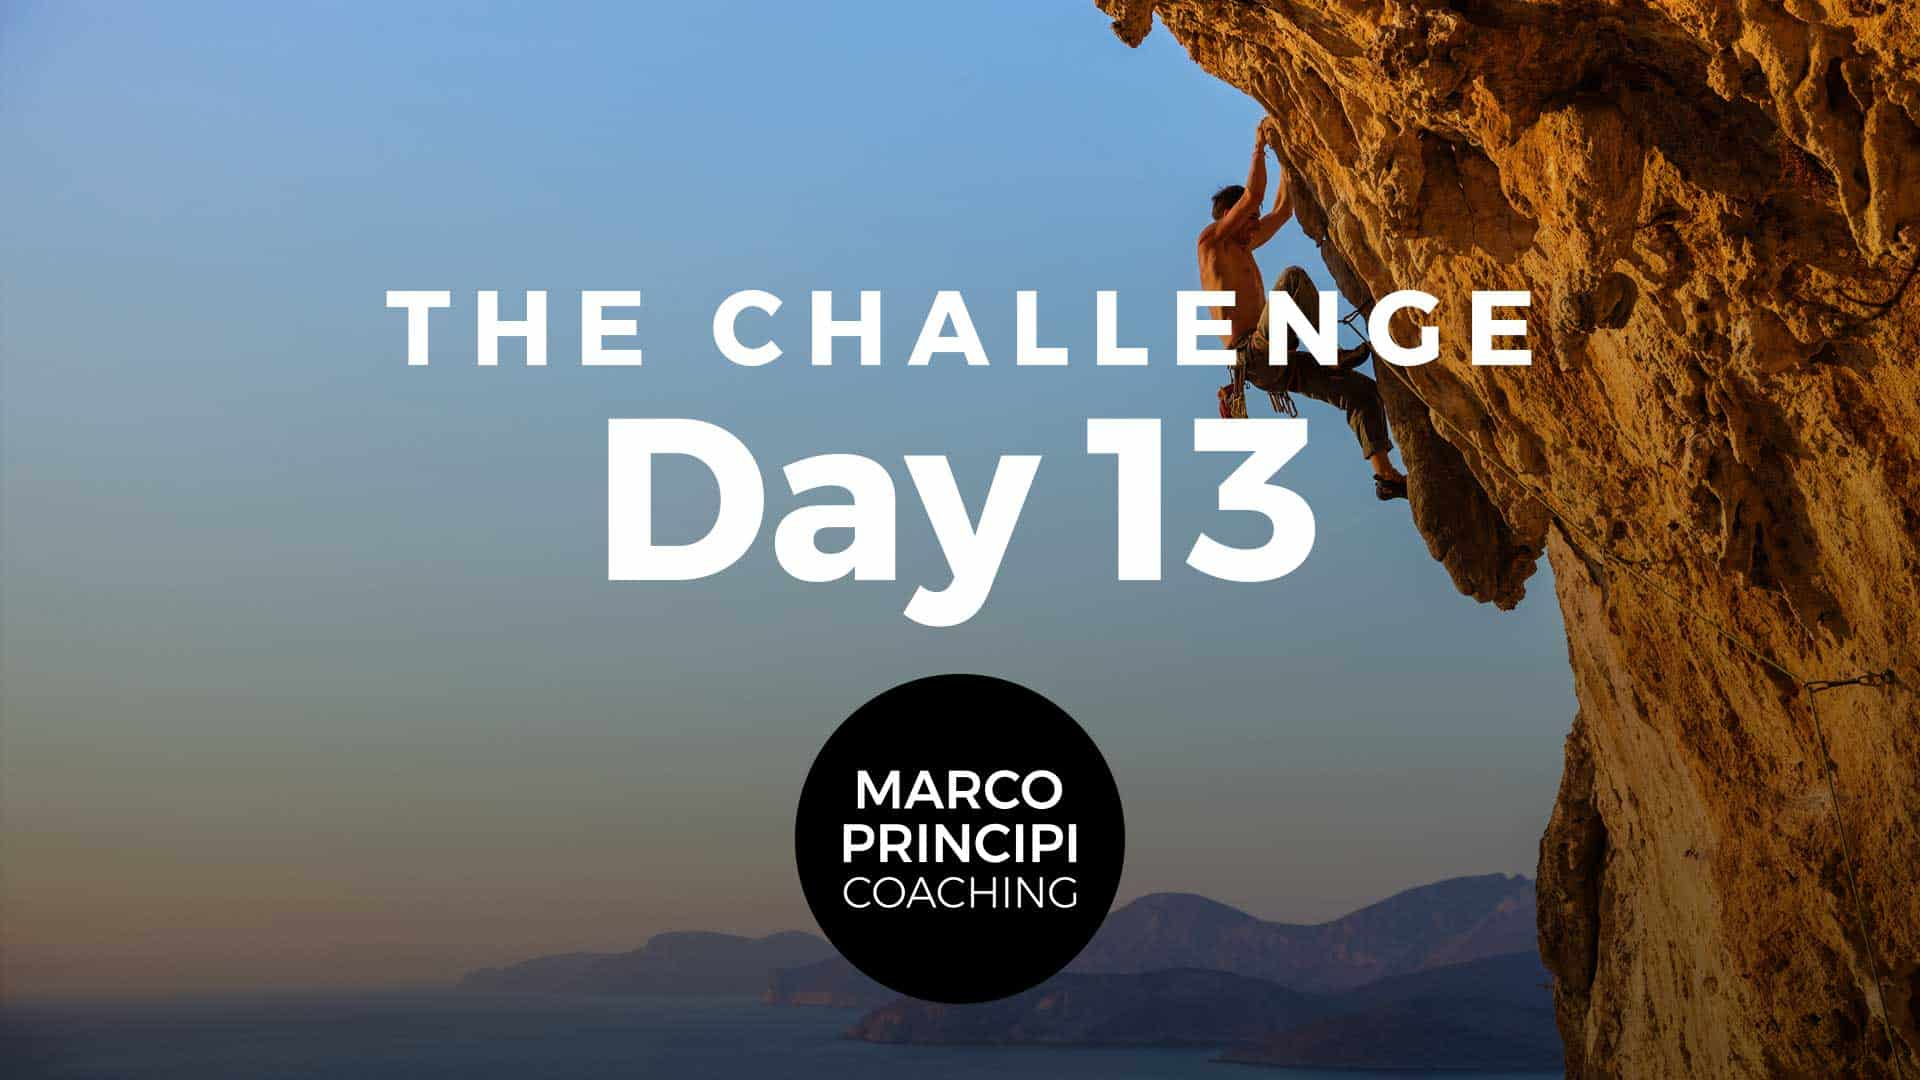 Marco Principi YT Cover The Challenge Day 013